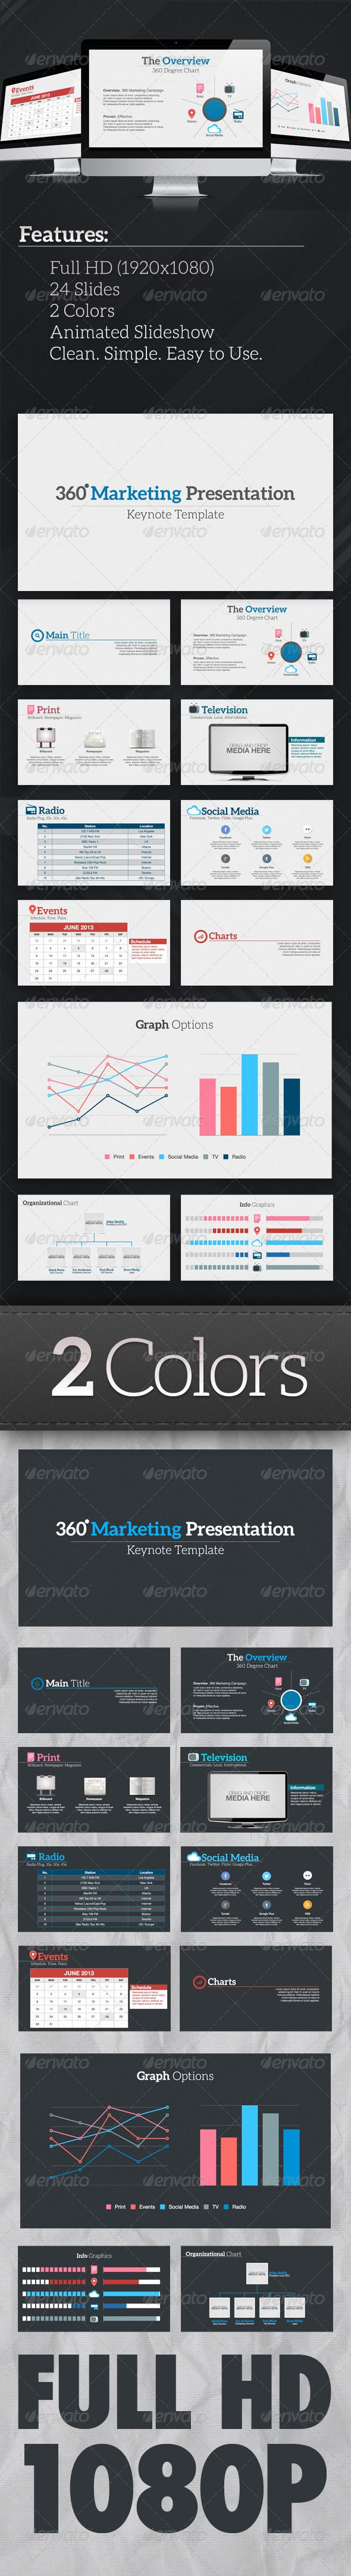 124 best Keynote themes / templates images on Pinterest ...